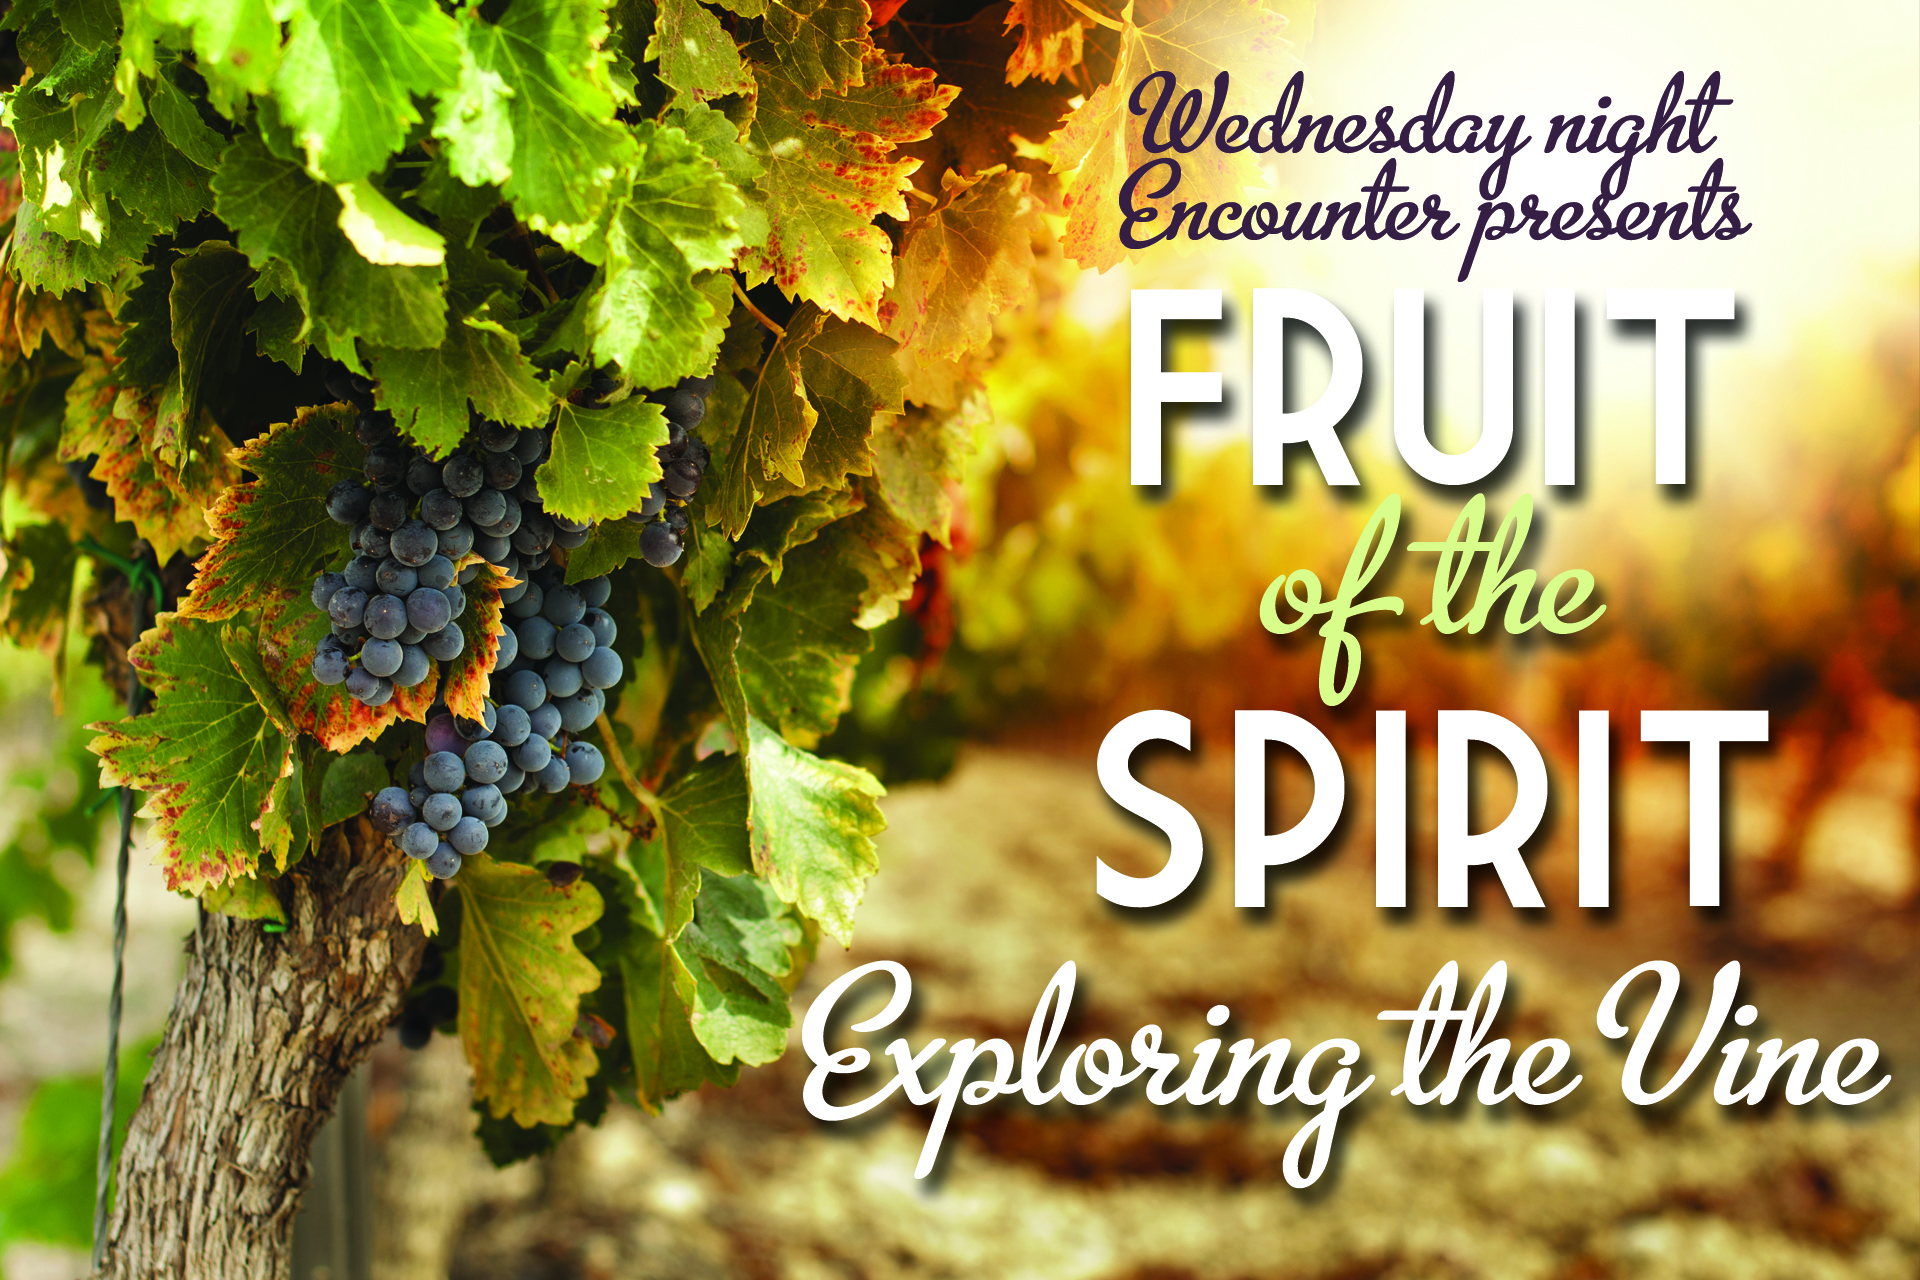 The Fruit of the Holy Spirit - Kindness - Gary Hopkins